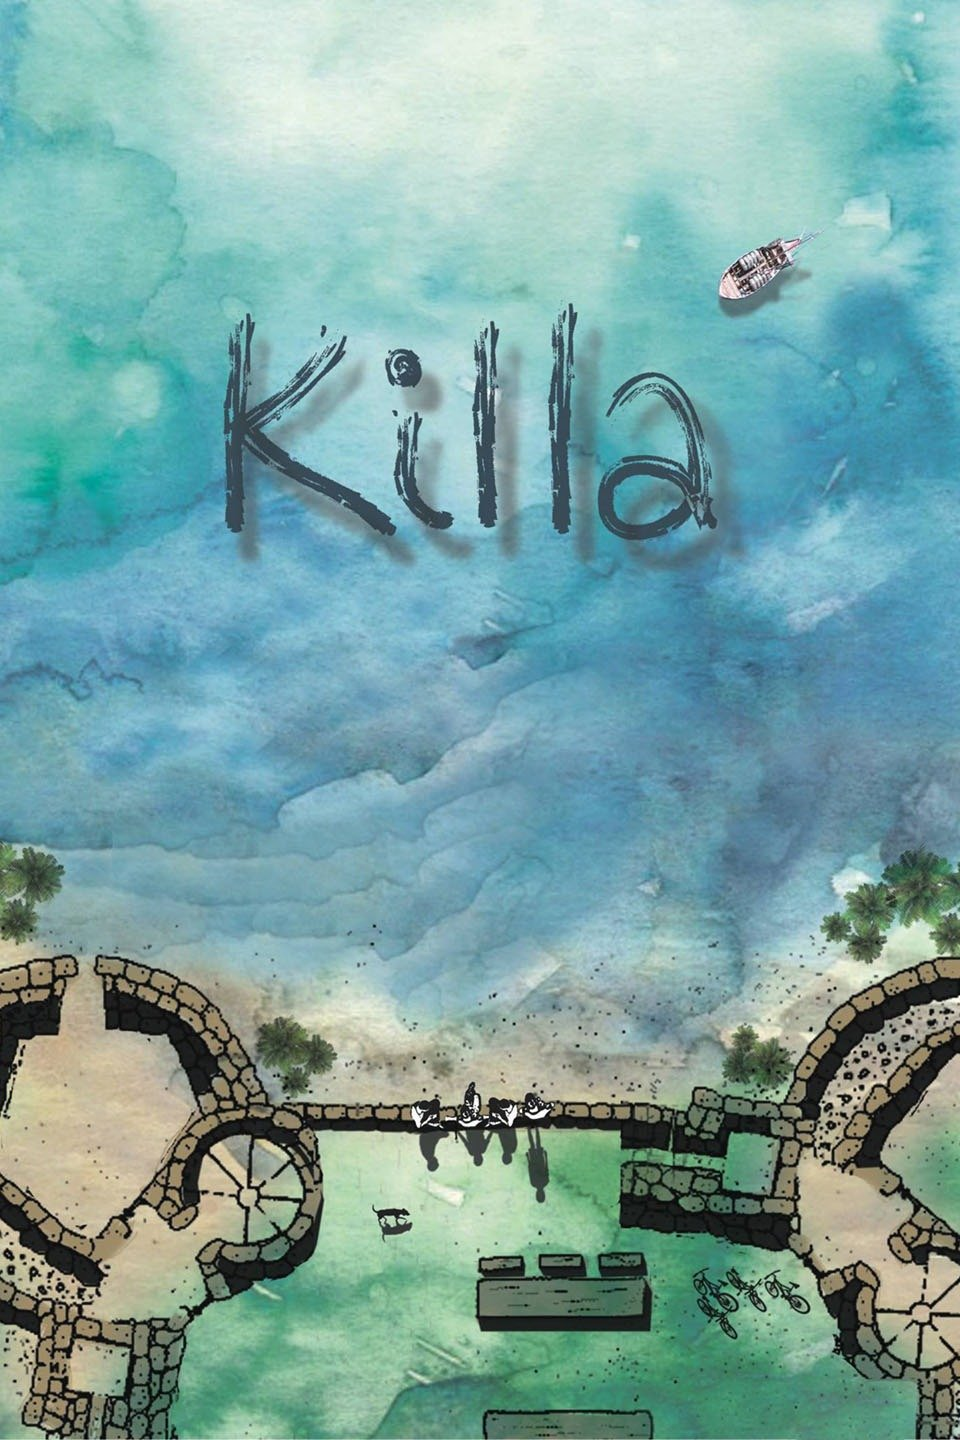 Killa 2014 Full Movie Download DVDRip 600MB